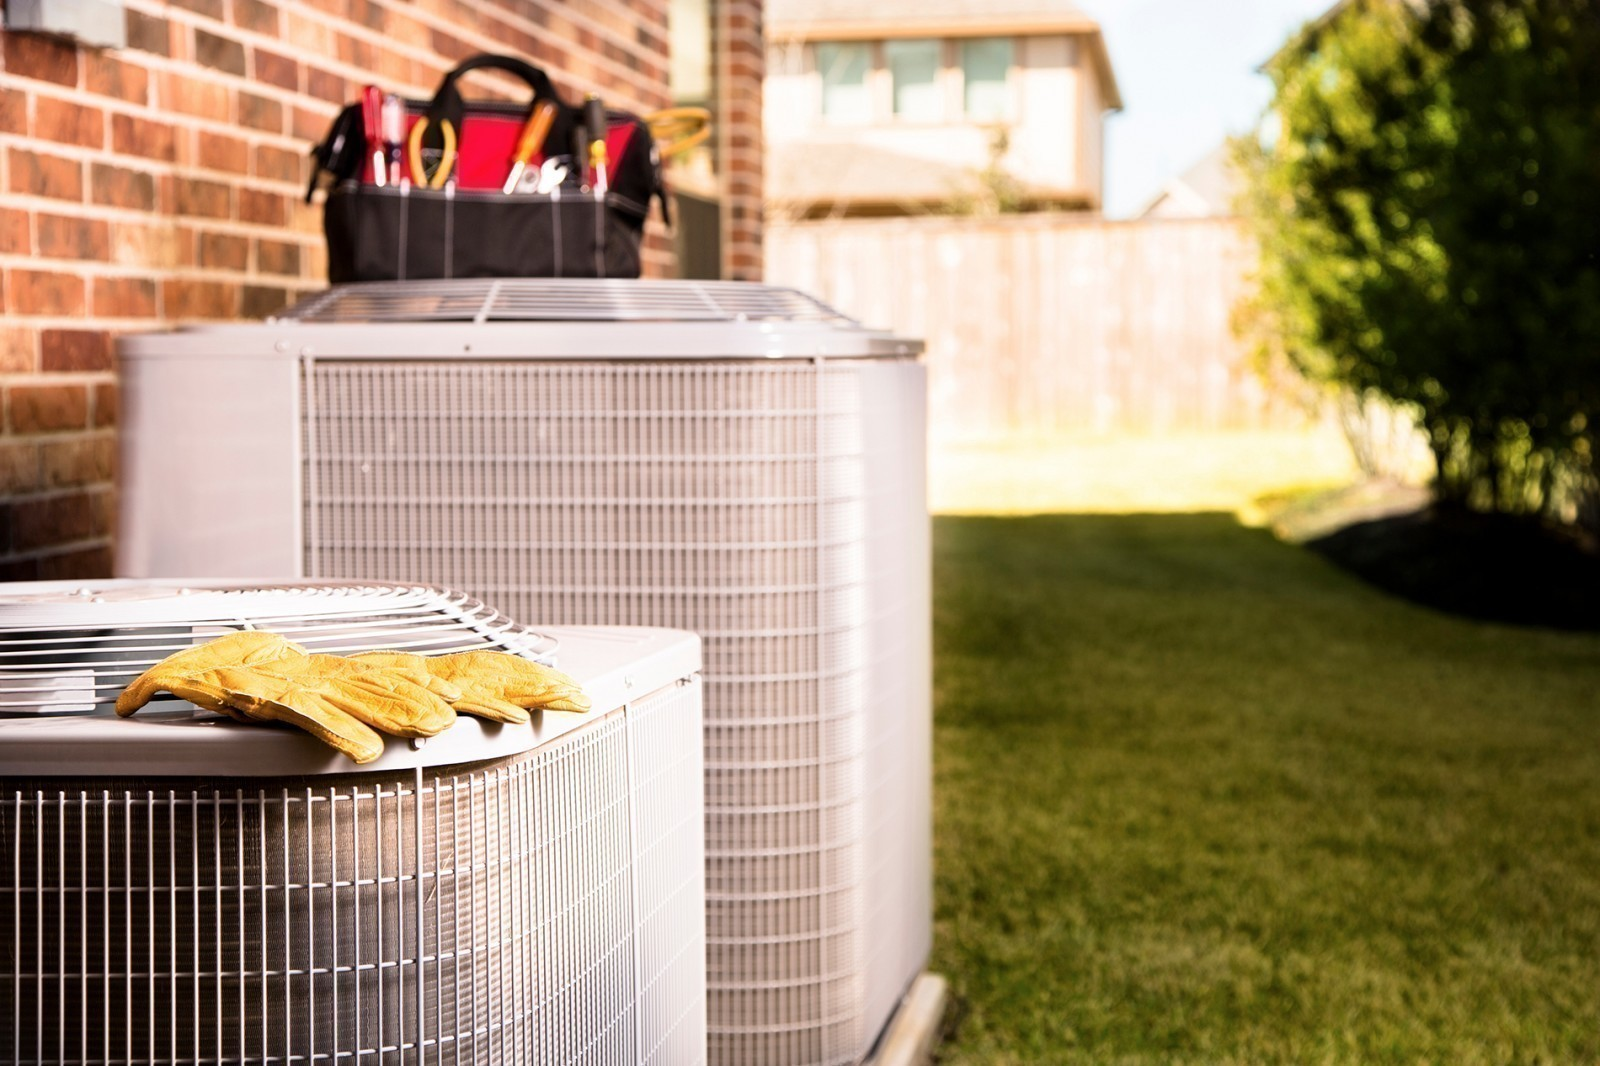 Coleman Air Conditioning Units